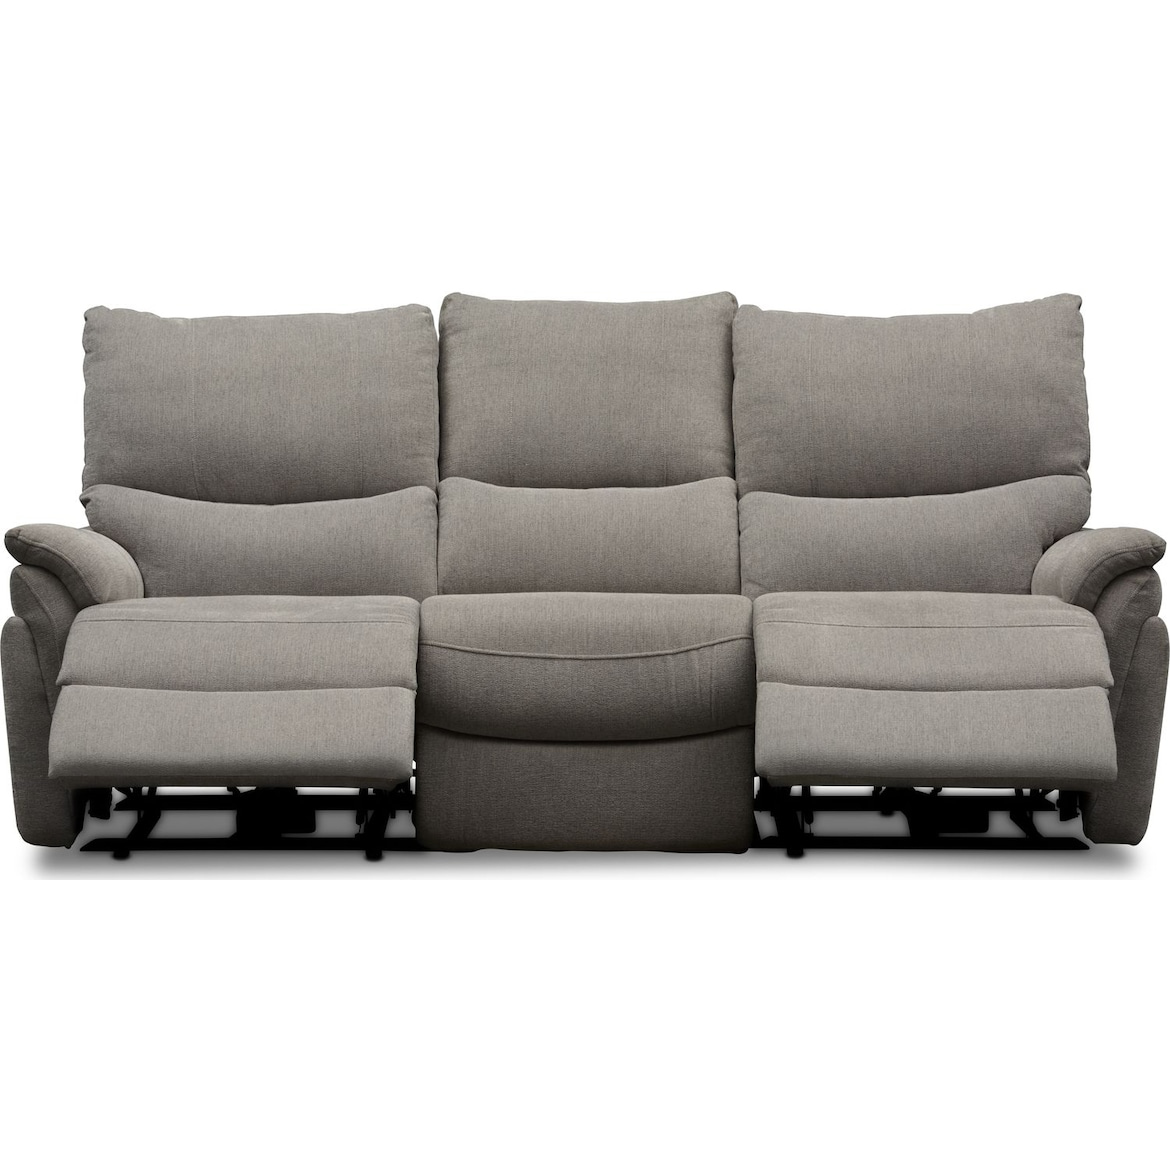 Peachy Maddox 2 Piece Triple Power Reclining Sofa Caraccident5 Cool Chair Designs And Ideas Caraccident5Info